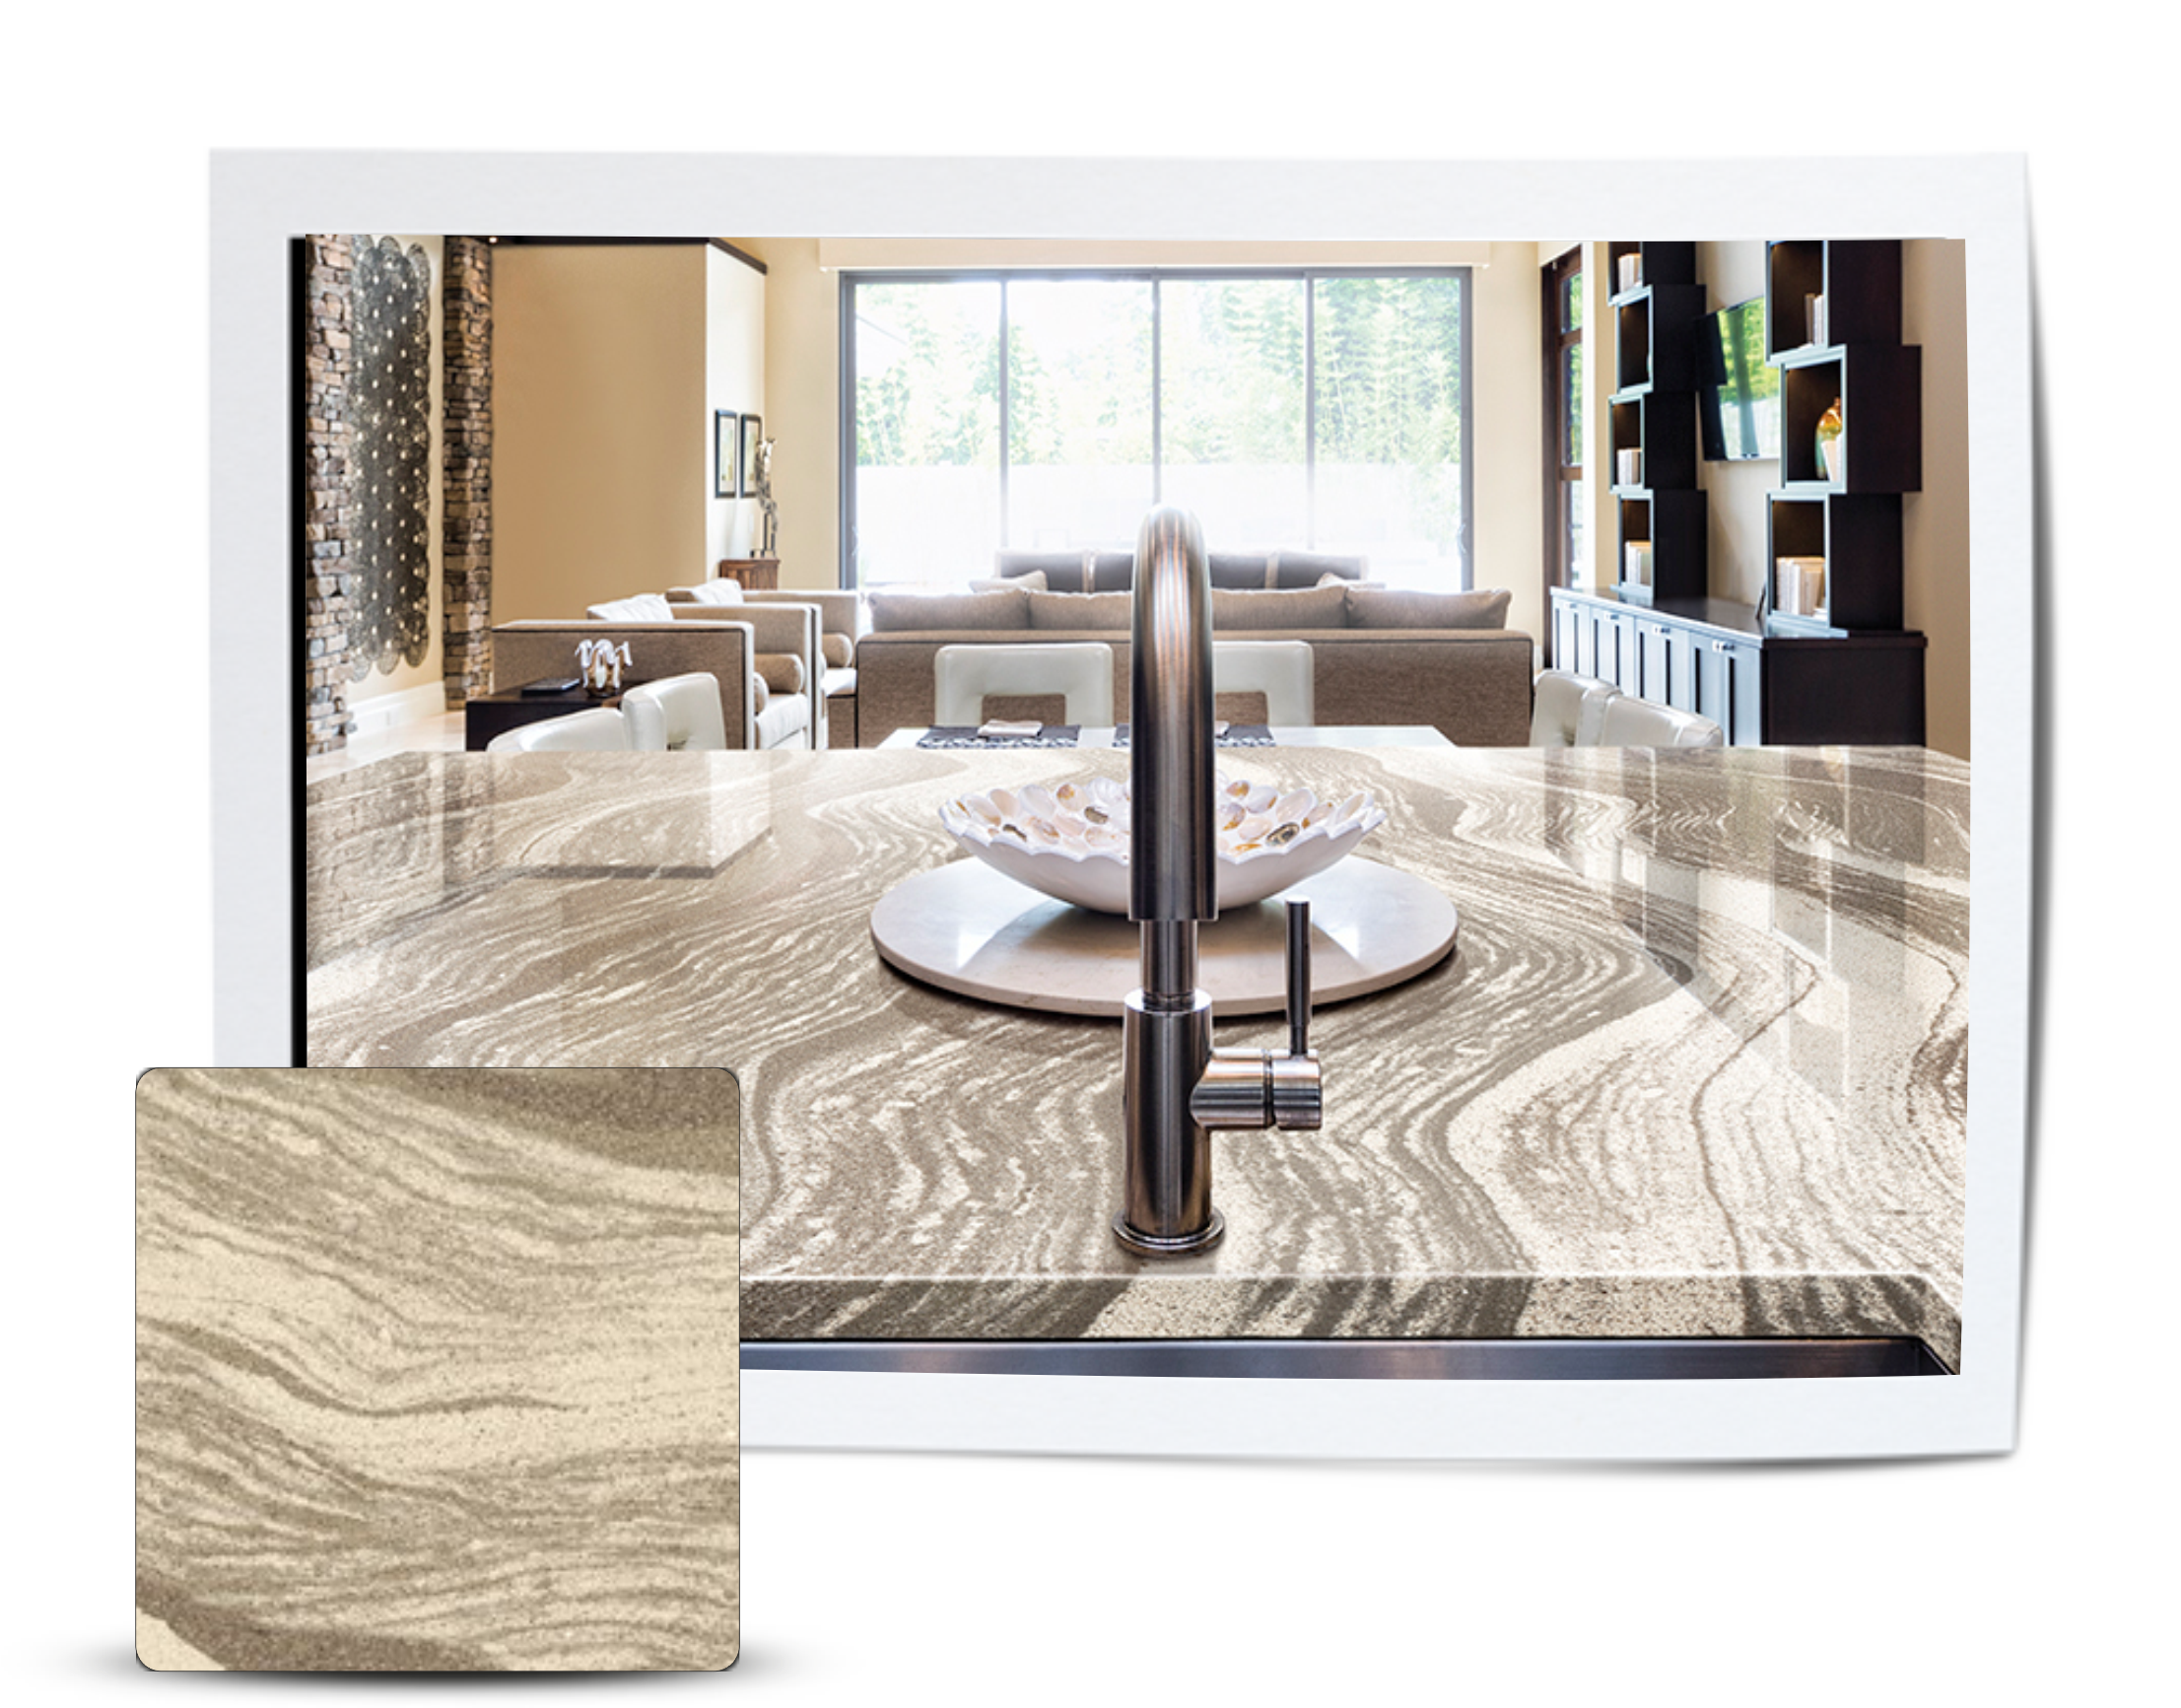 Progressive Countertop Feature Stone for February: Oakmoor by Cambria